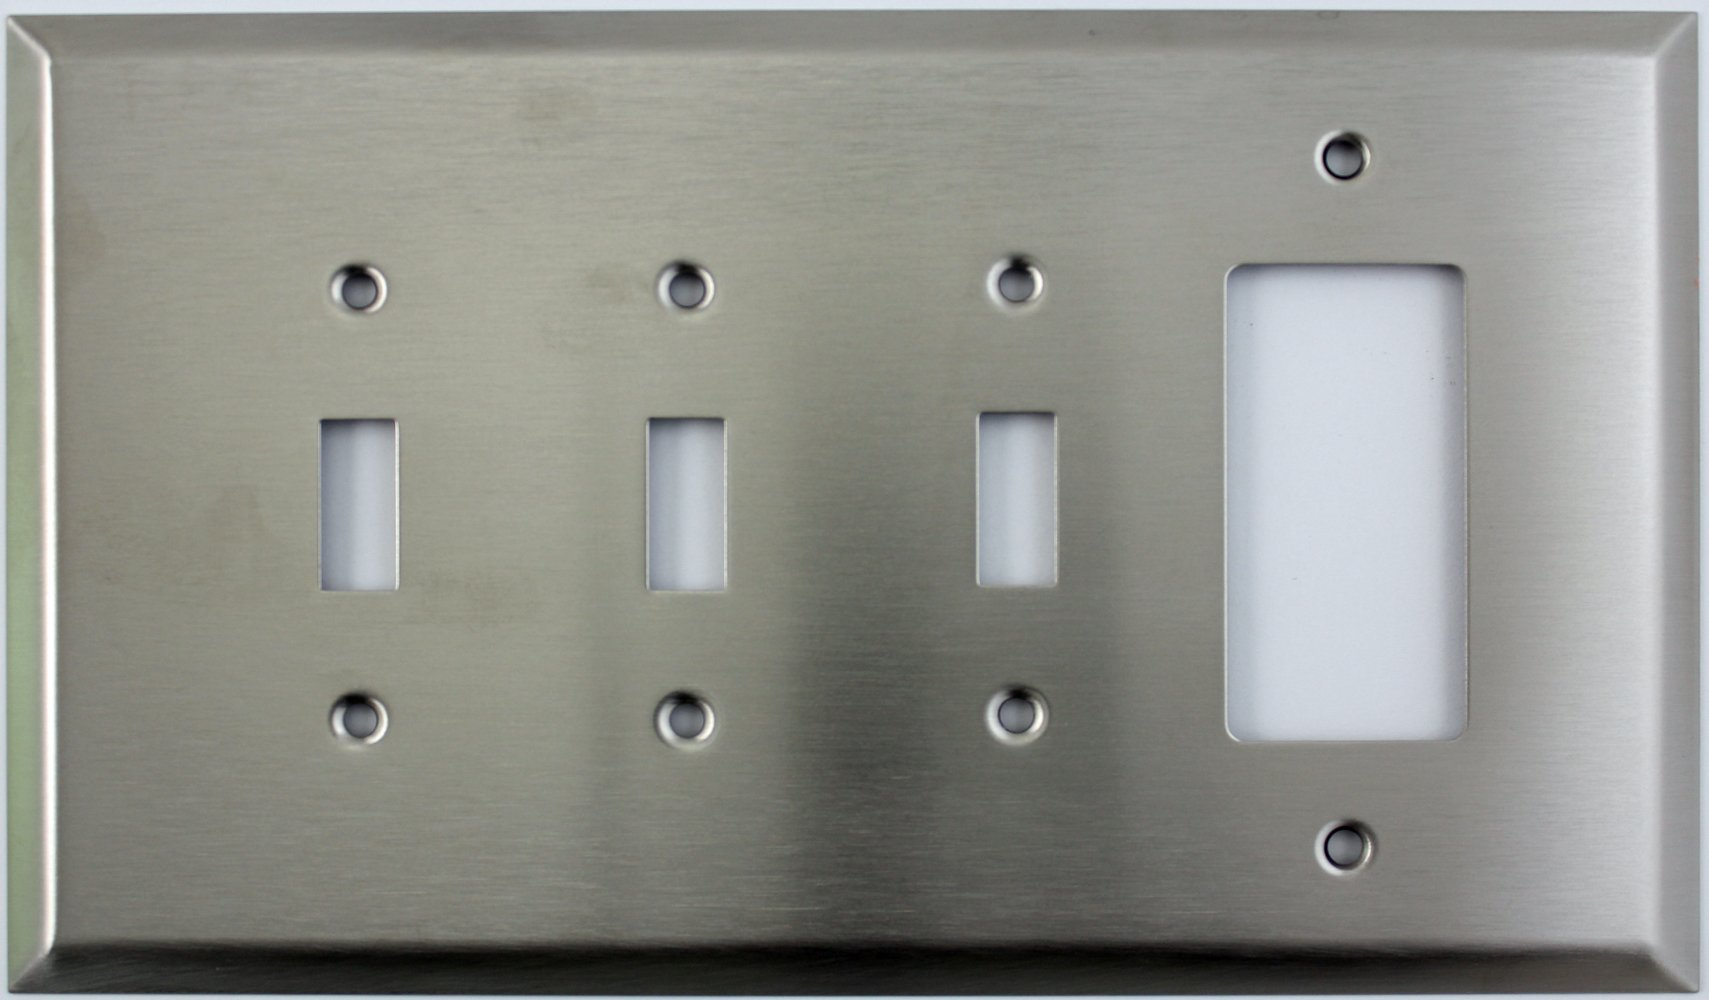 Over Sized Jumbo Satin Stainless Steel 4 Gang Switch Plate - 3 Toggle Light Switch 1 GFI Outlet/Rocker